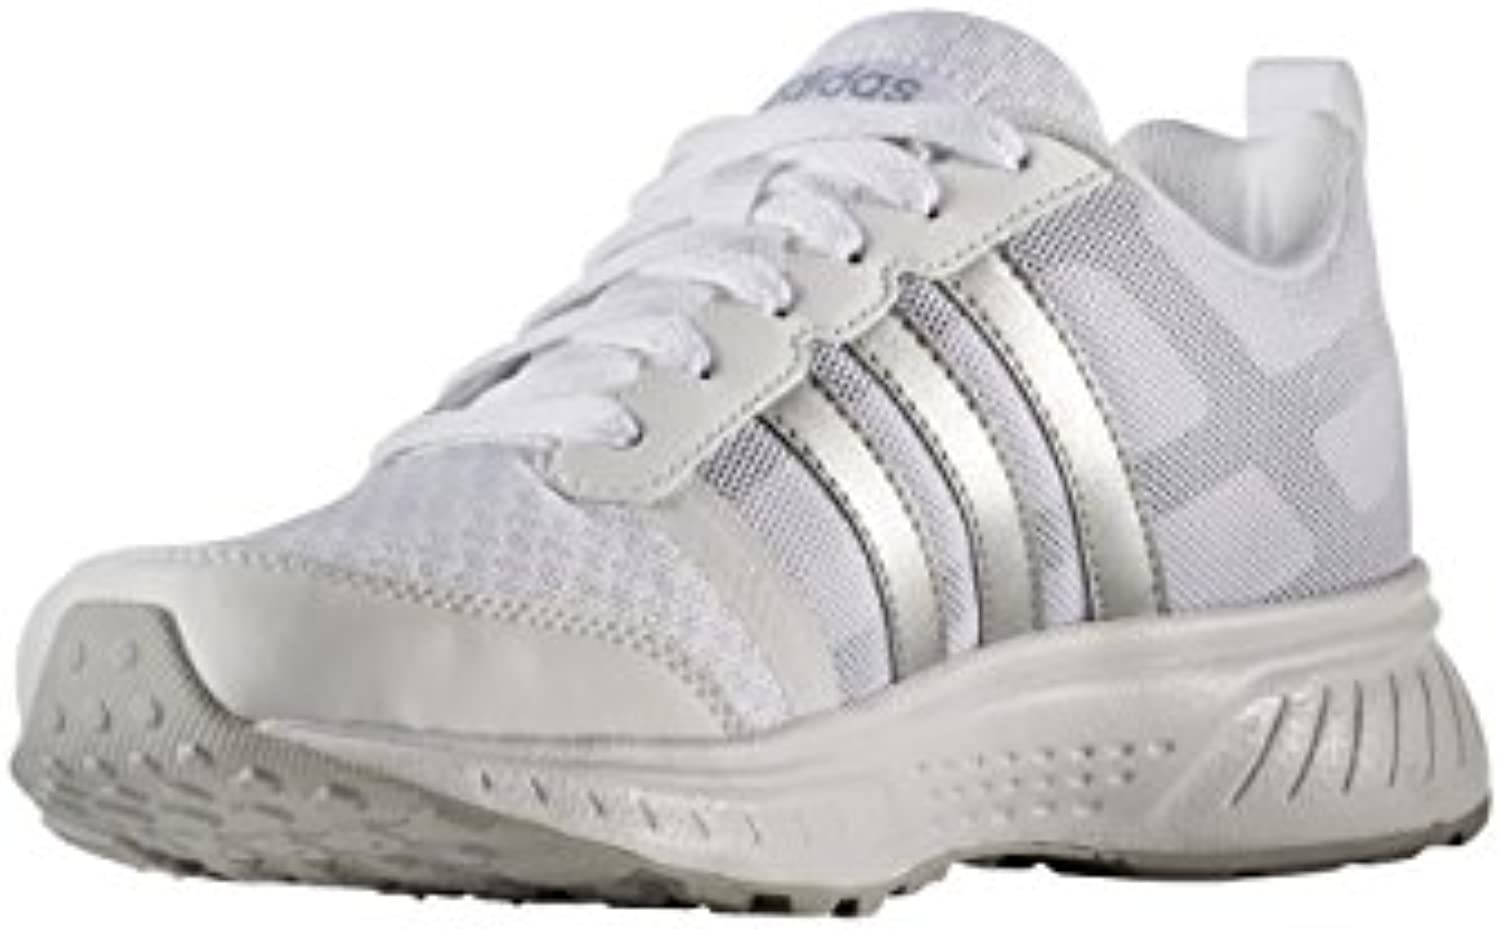 Men's/Women's Adidas neo Women's Trainers Trainers Trainers white Bianco Rich design Price reduction retail price 5f983d